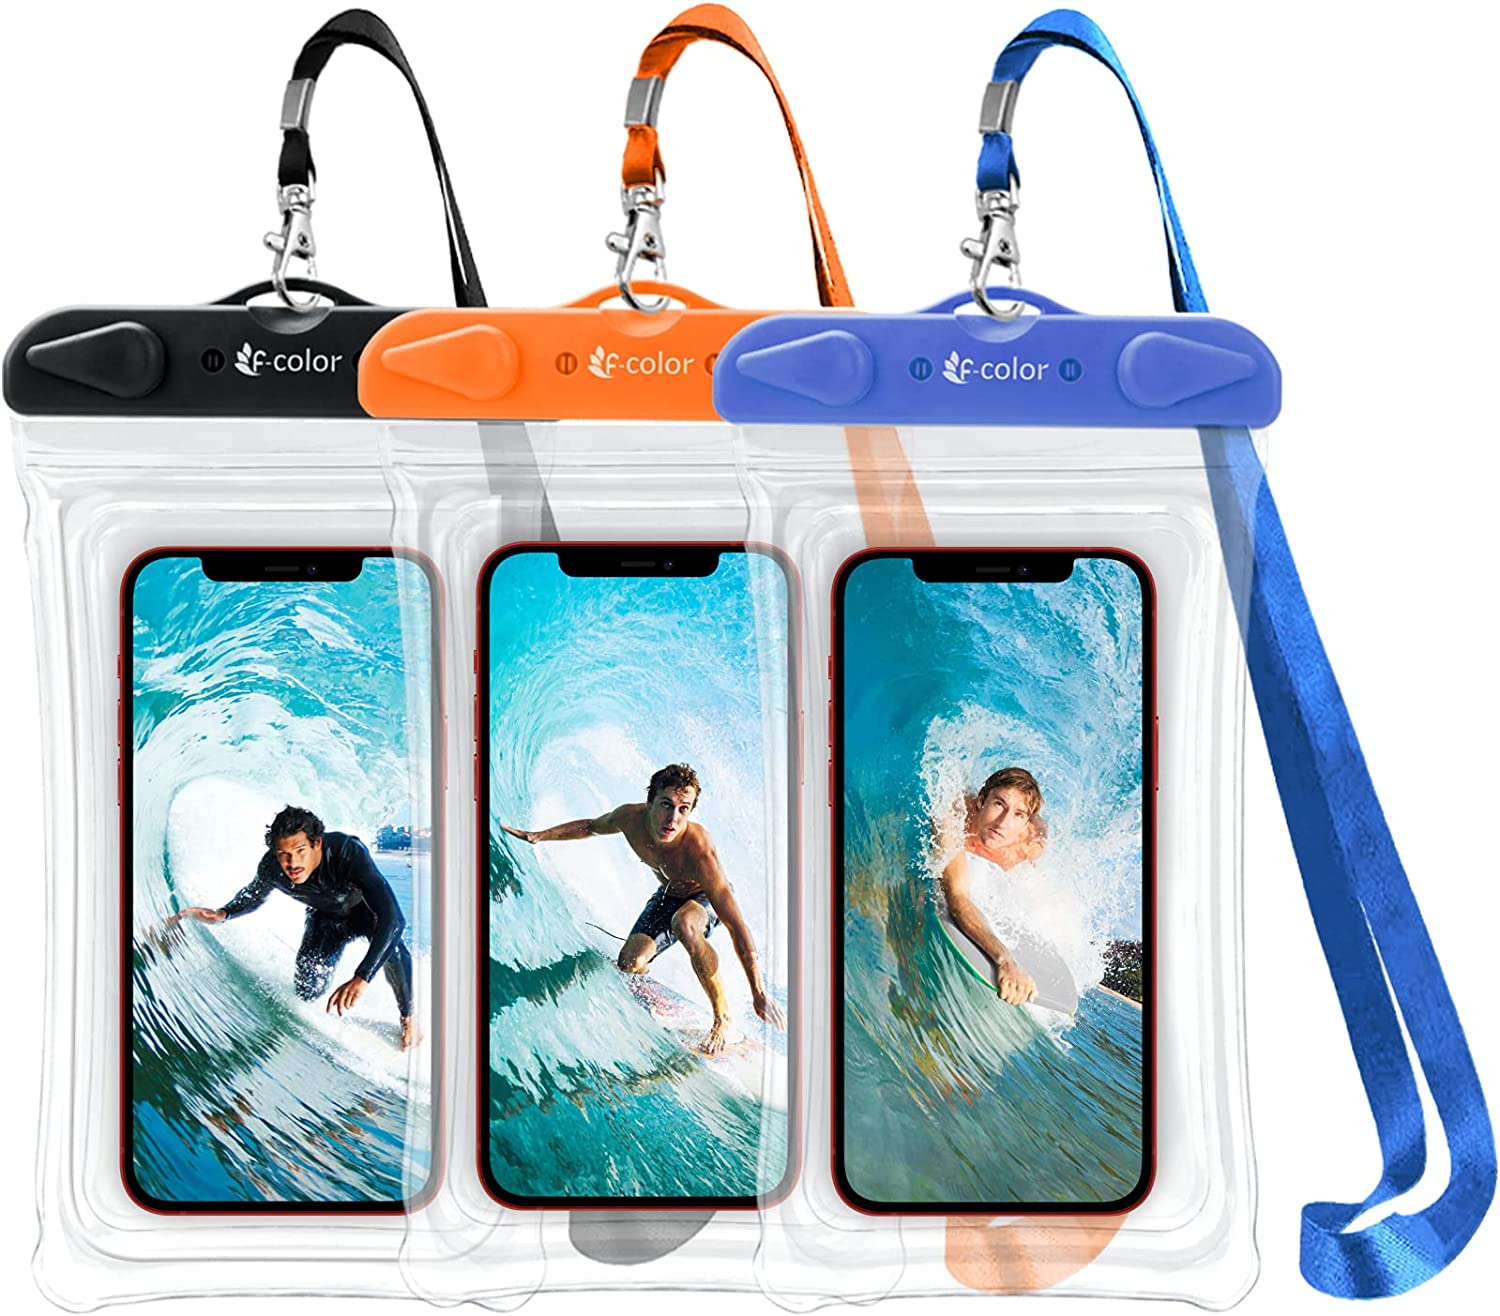 F-color Waterproof Phone Case, 3 Pack Transparent PVC Waterproof Phone Pouch Dry Bag, Beach Accessories for Swimming, Boating, Fishing, Skiing, Rafting, Compatible for iPhone 12 Pro Max and More